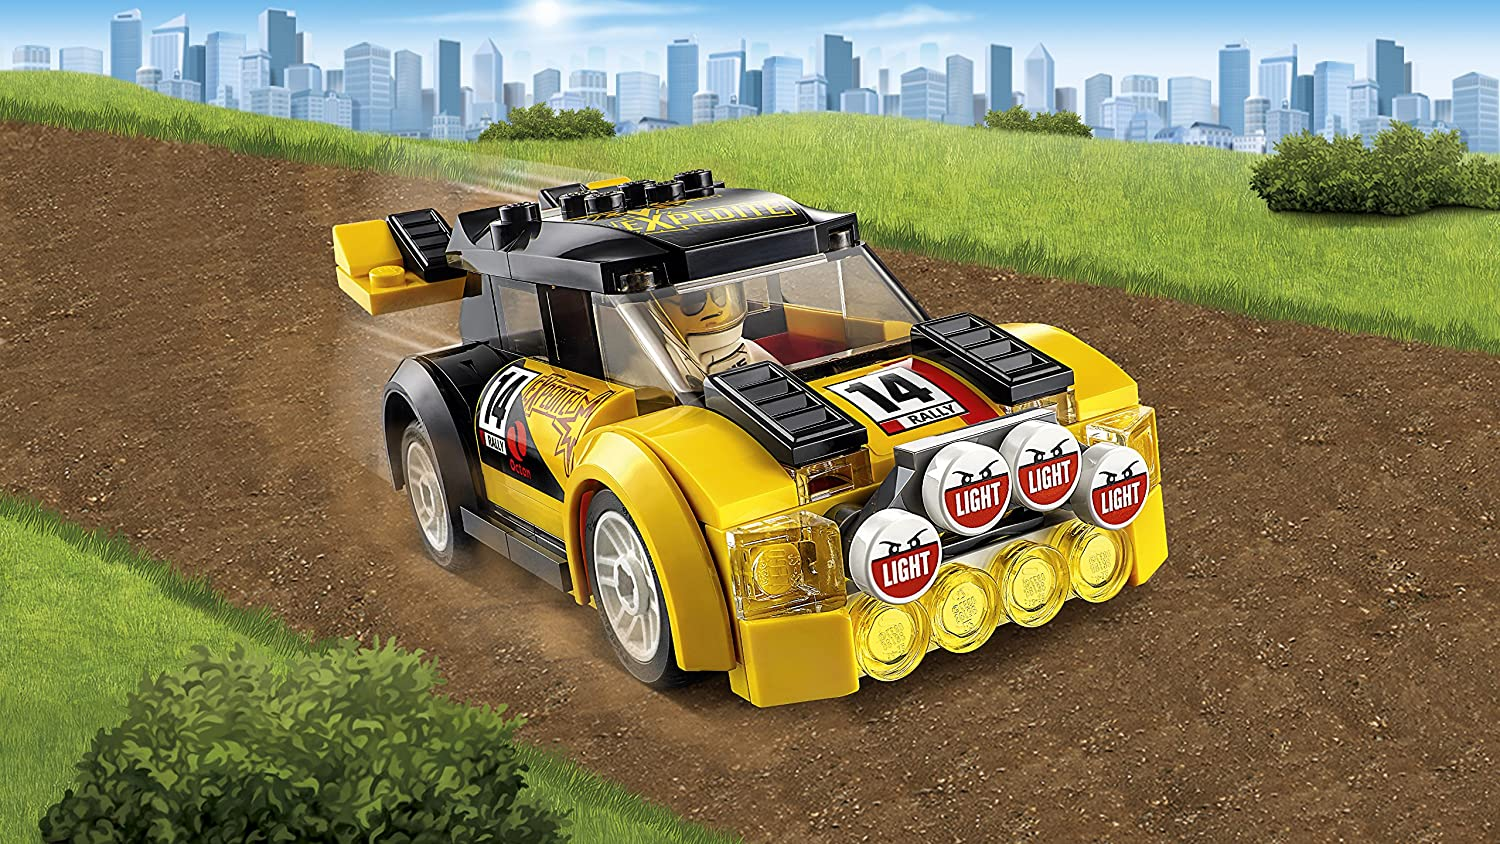 Lego City Rally Car 60113 By Lego Toys Games